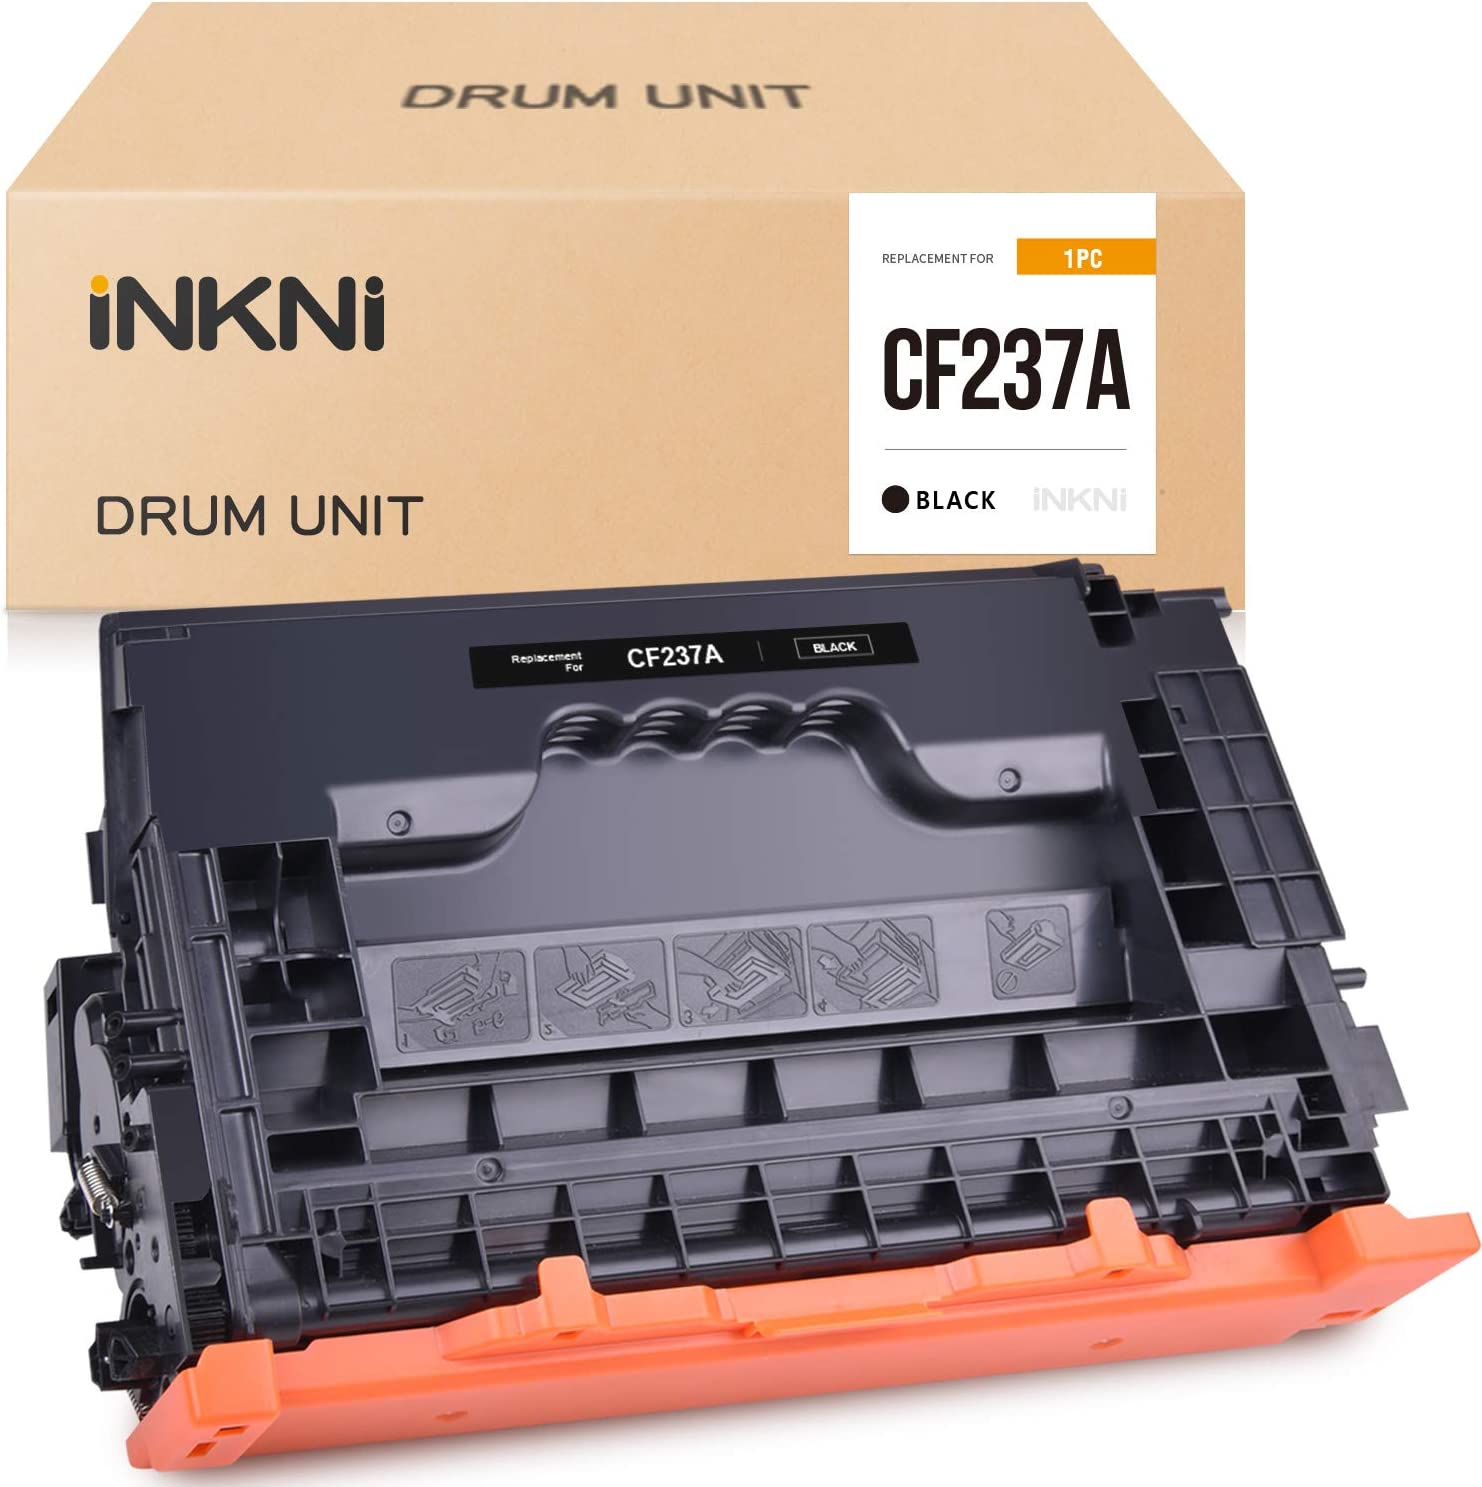 INKNI Compatible Toner Cartridge Replacement for HP 37A CF237A CF-237A for Laserjet Enterprise M607 M607n M607dn M608 M608n M608dn M608x M609 M609dn, MFP M631 M632 M633 (Black,1-Pack)